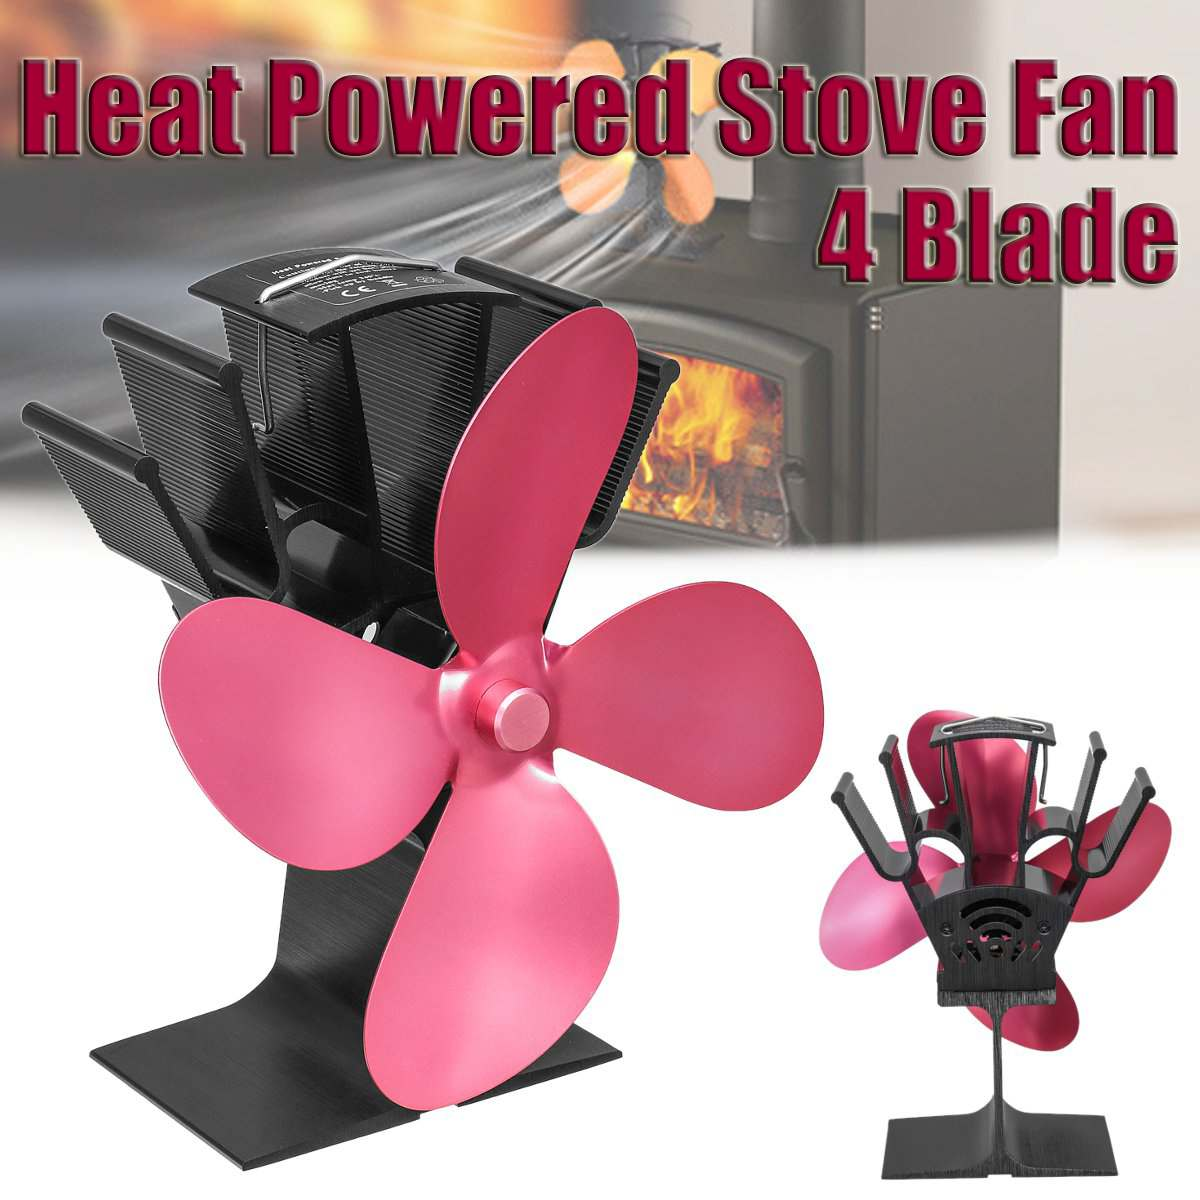 Newest 4 Blades Fireplace Heat Powered Wood Stove Fan Log Wood Burner Eco Friendly Quiet Fan Home Efficient Heat DistributionNewest 4 Blades Fireplace Heat Powered Wood Stove Fan Log Wood Burner Eco Friendly Quiet Fan Home Efficient Heat Distribution